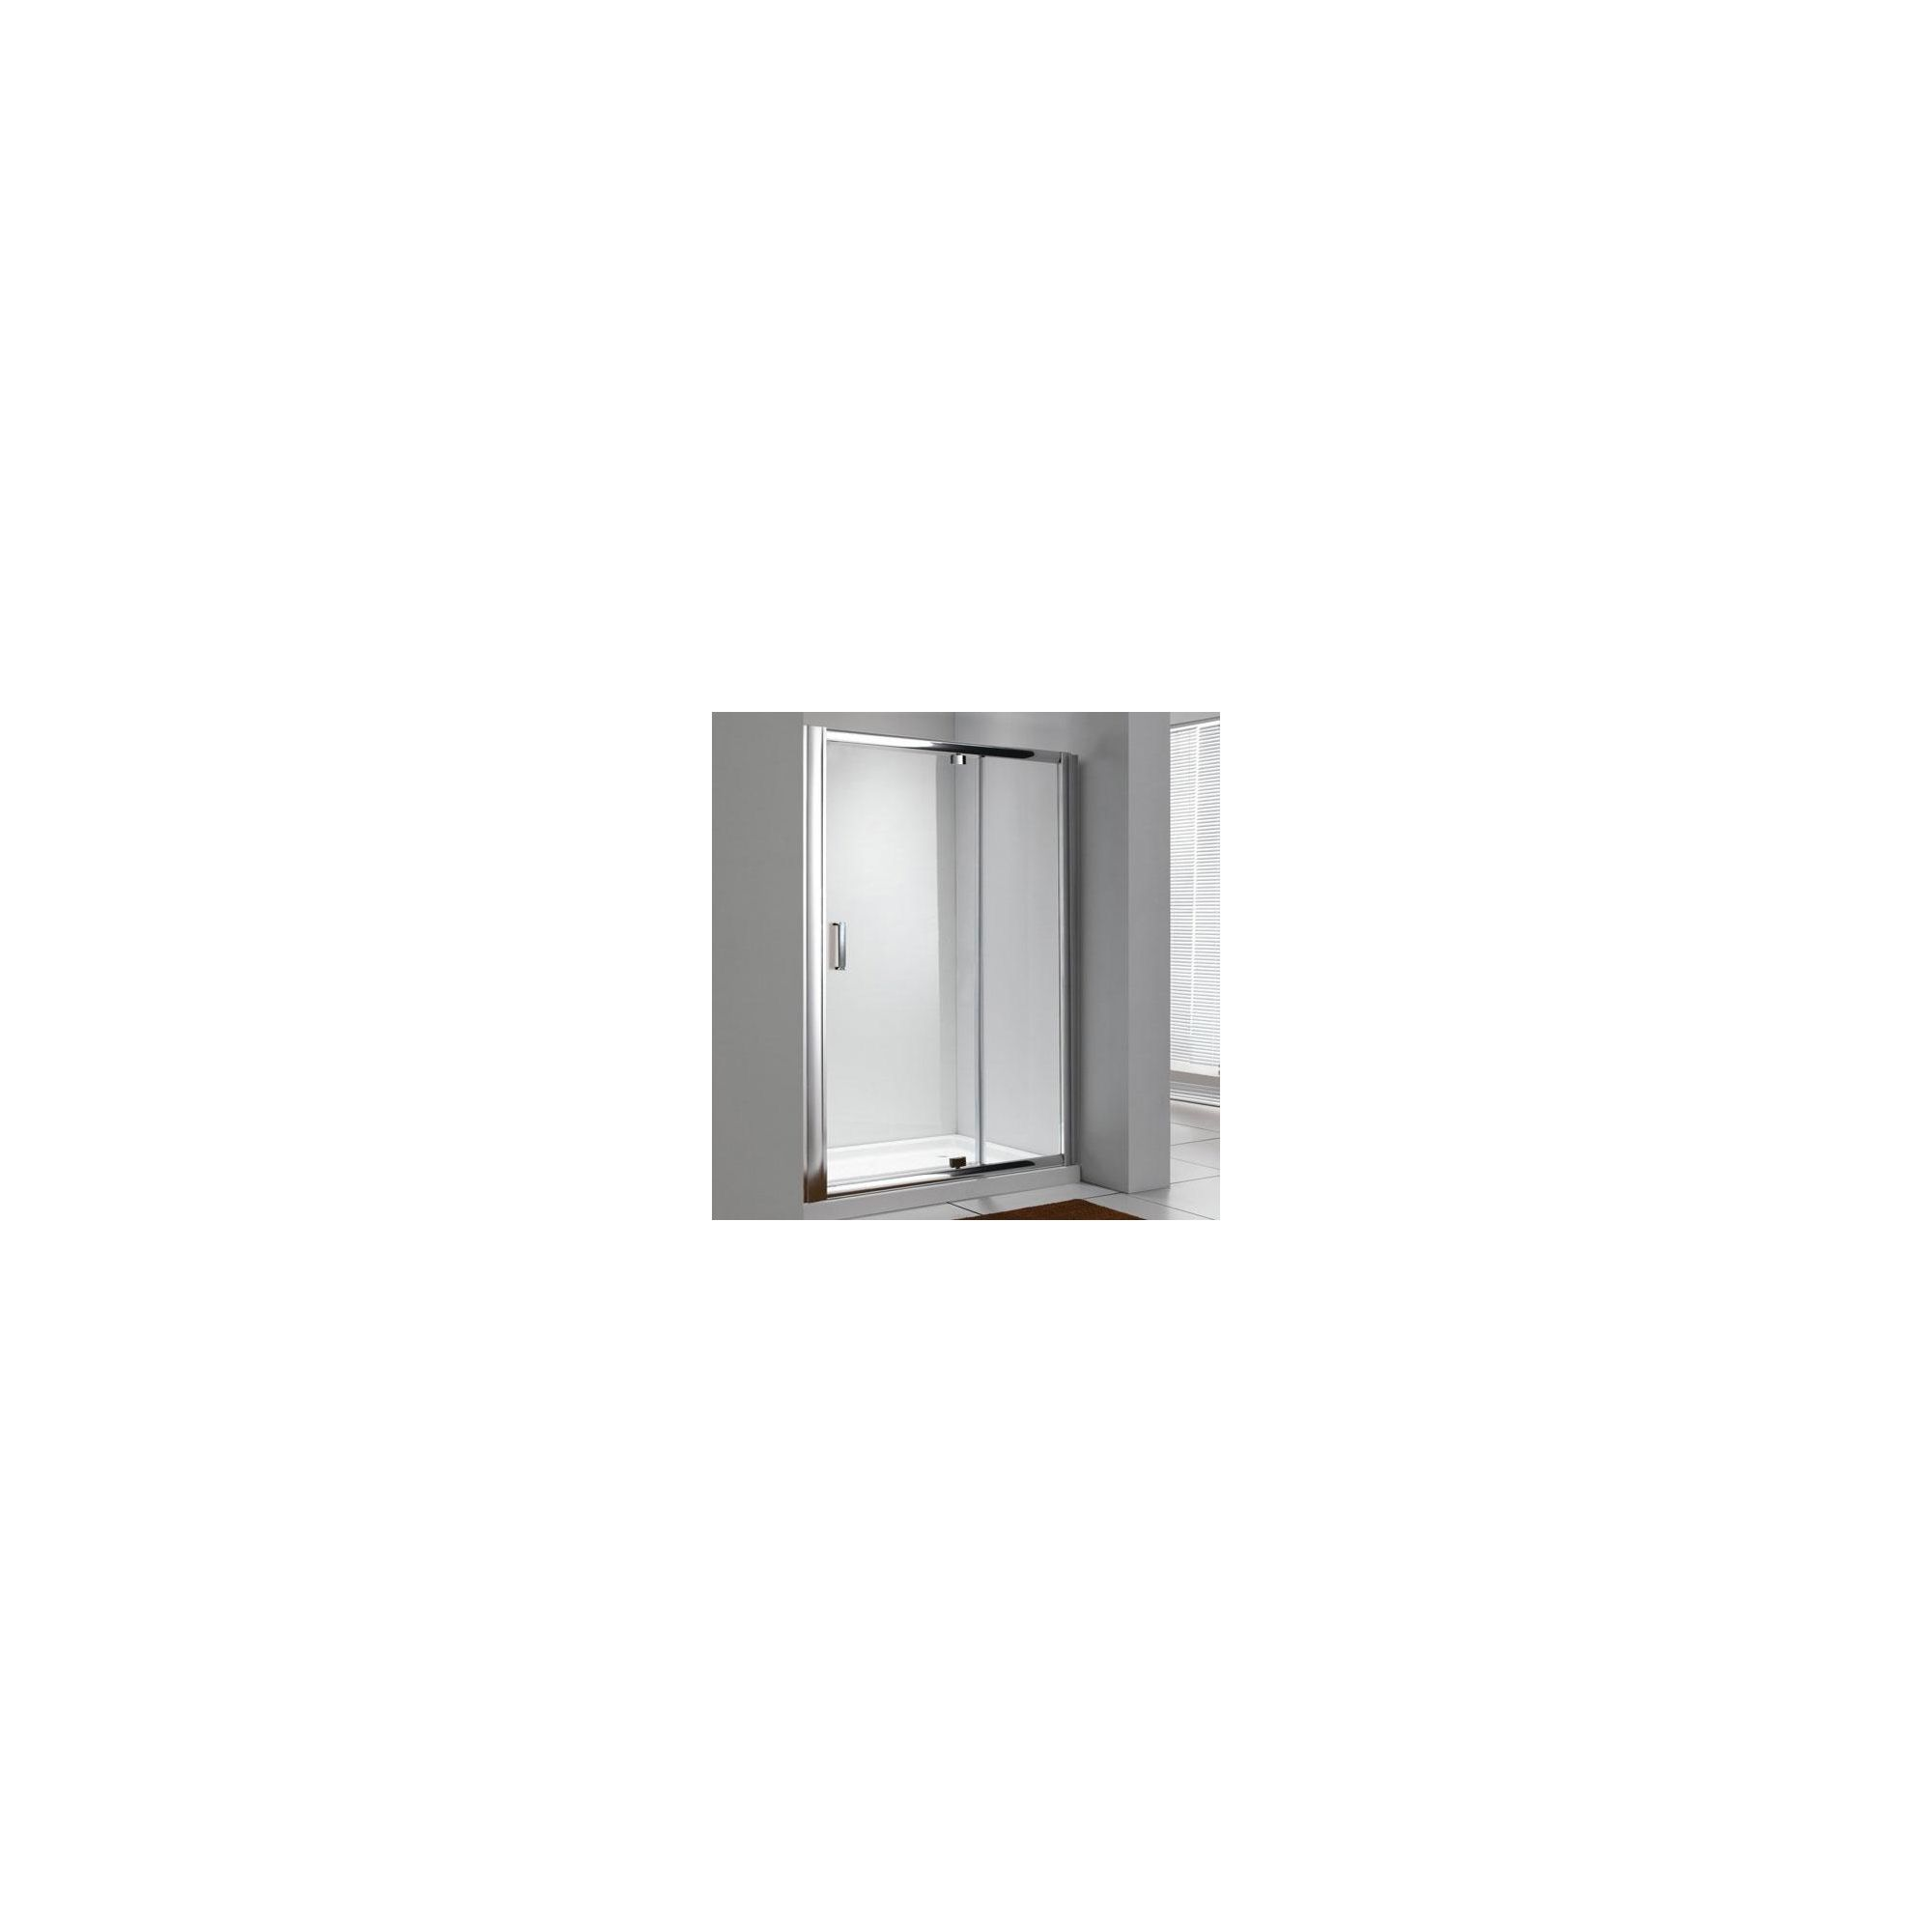 Duchy Style Pivot Door Shower Enclosure, 1200mm x 700mm, 6mm Glass, Low Profile Tray at Tesco Direct